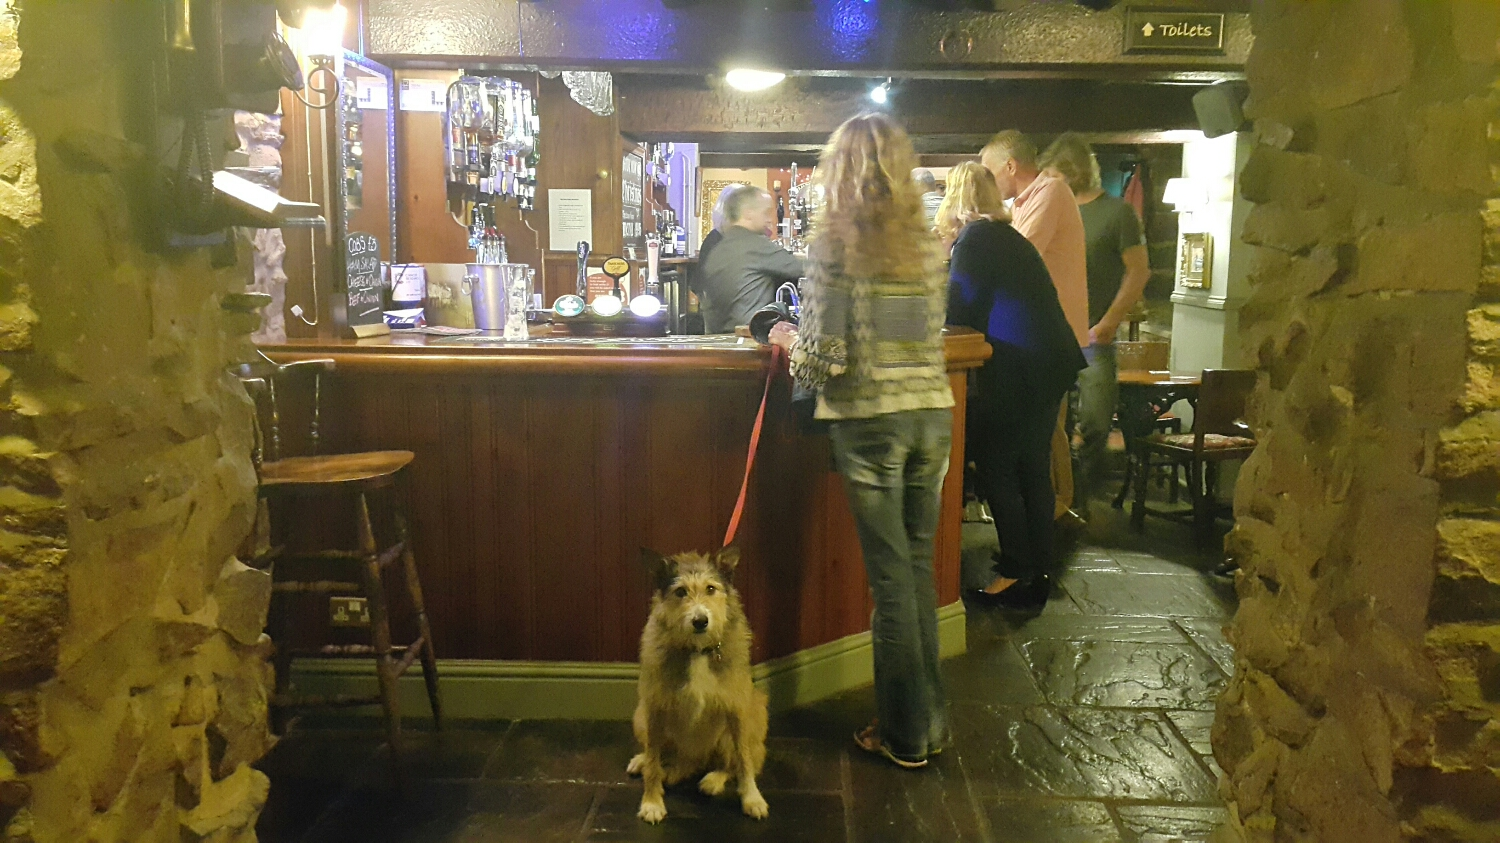 After arriving at Matlock and having Tea, Winner, Alices Mum took us to the local for a drink.  Murtle and Keela the dog where also allowed in the pub!